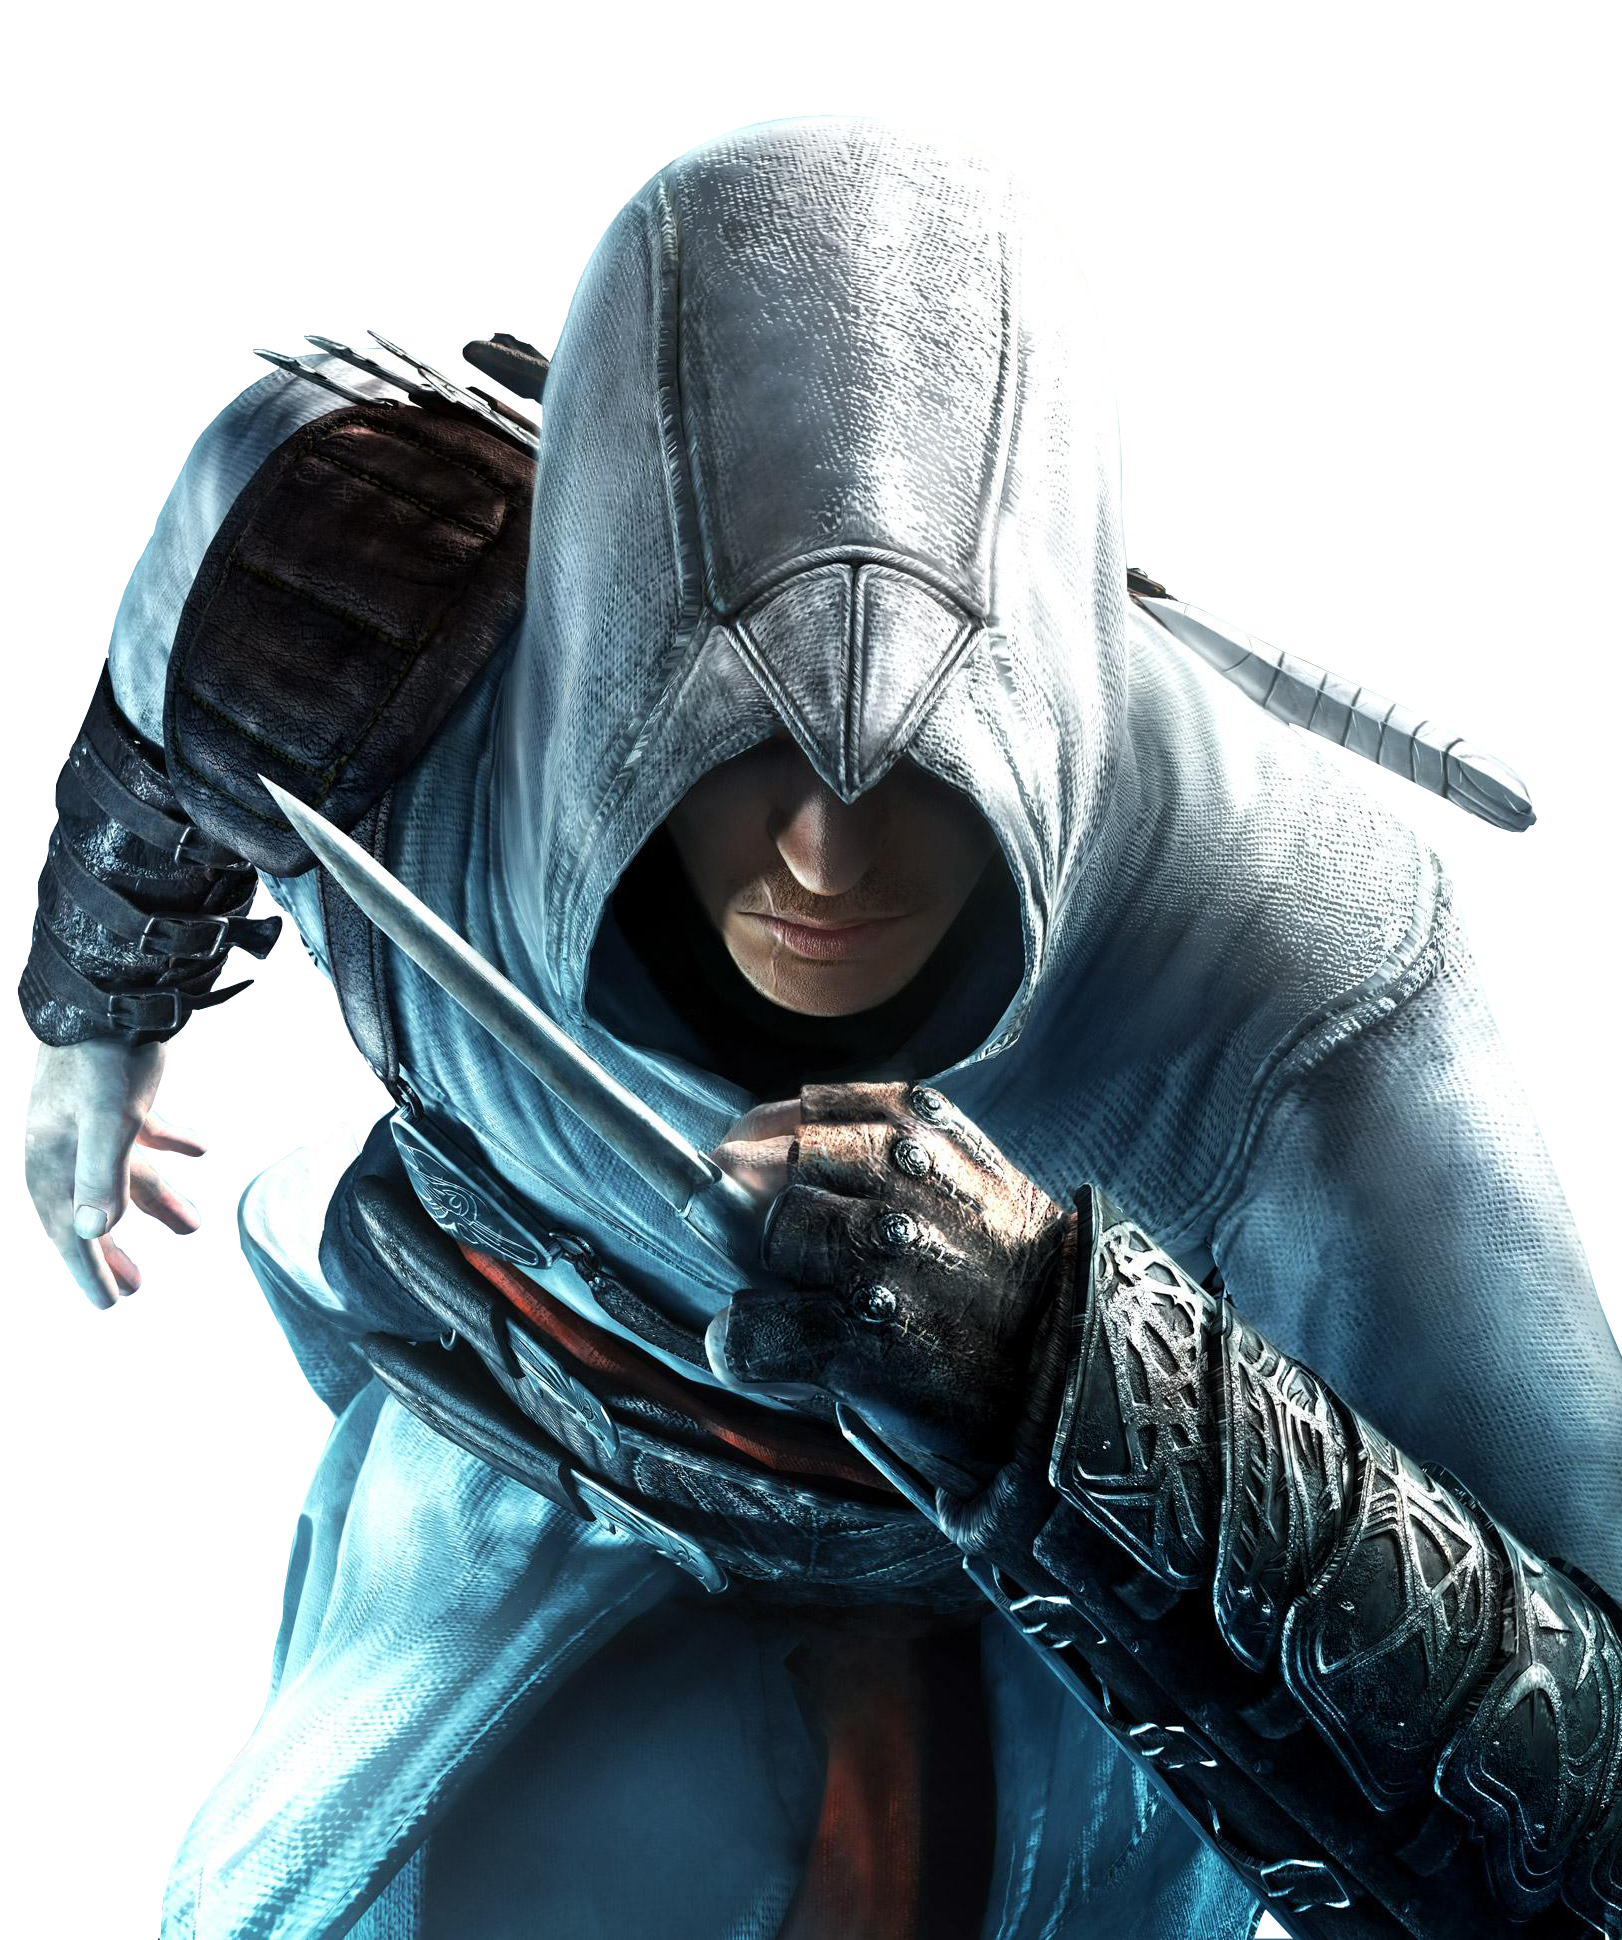 49 Assassins Creed Altair Wallpaper On Wallpapersafari